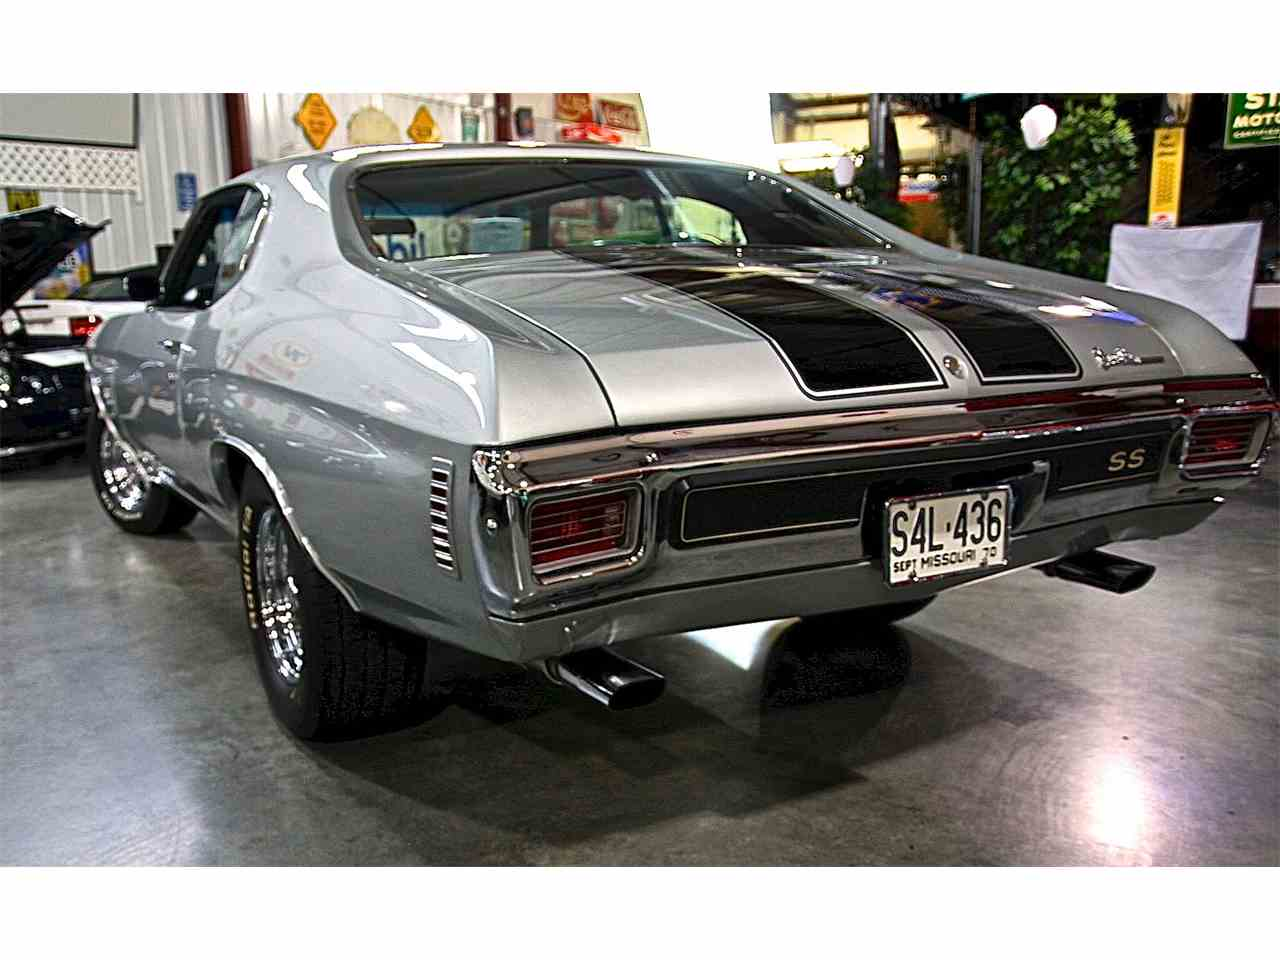 Large Picture of 1970 Chevelle SS located in Florida - $92,000.00 Offered by a Private Seller - L41W